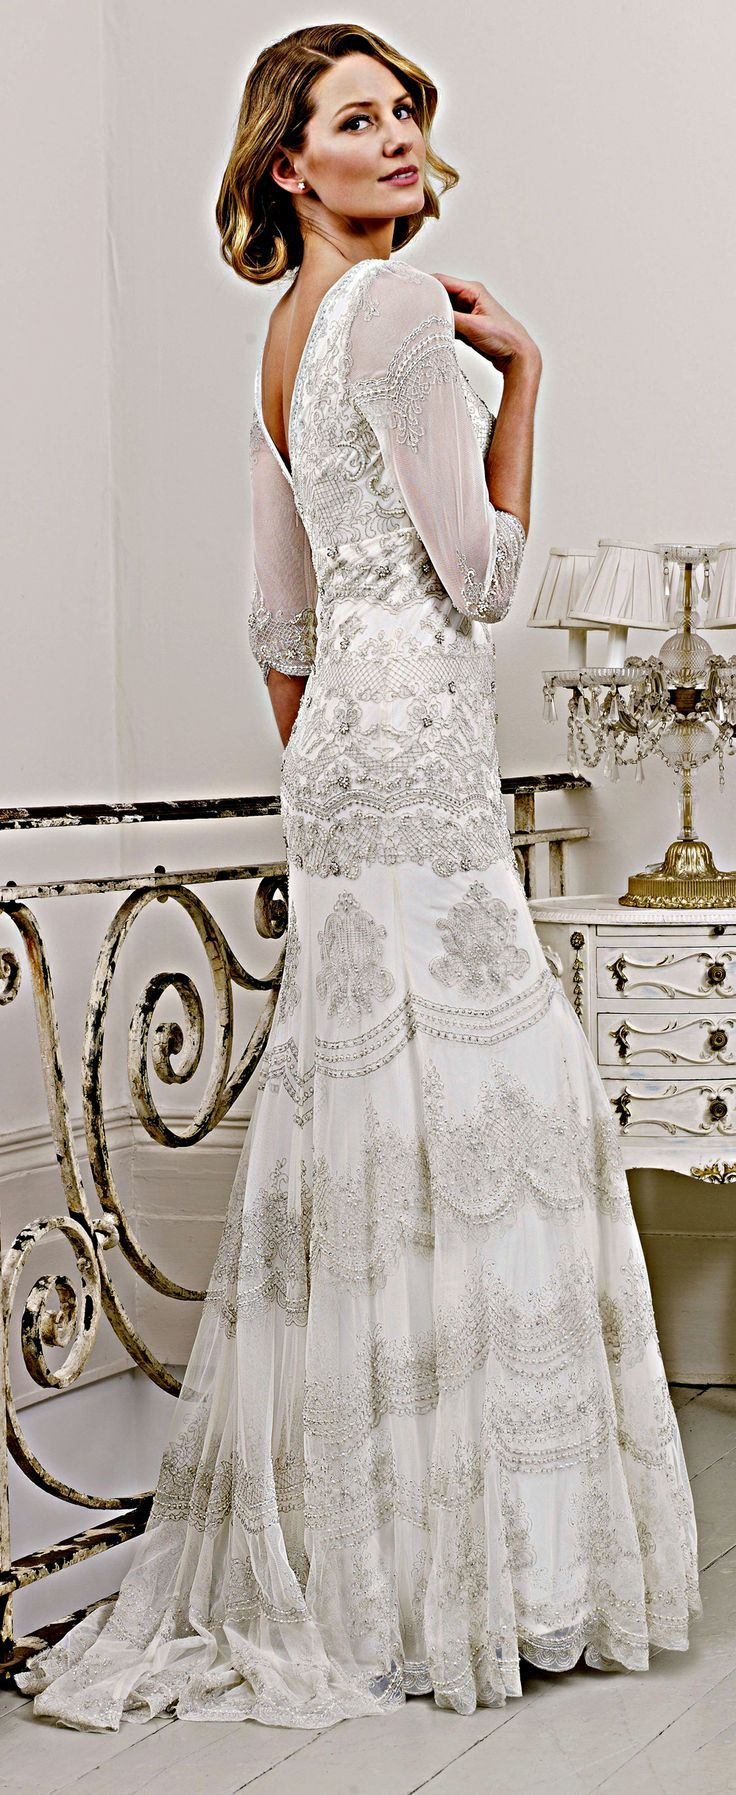 Wedding Dresses For The Mature Bride : Best ideas about older bride on mature